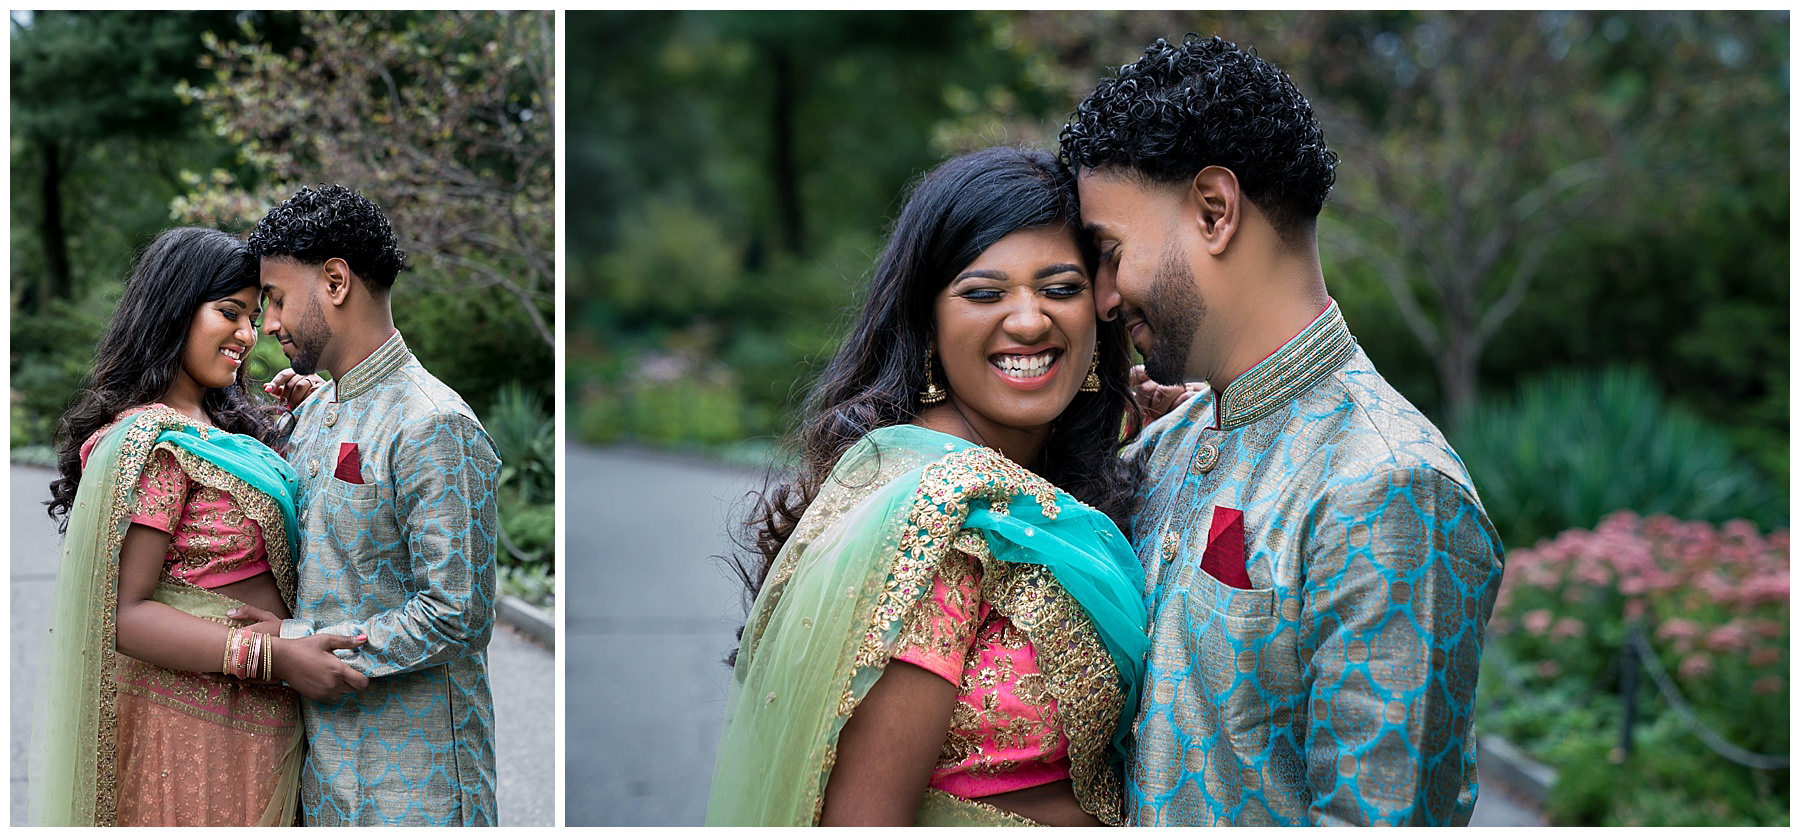 fort-tysons-park-new-york-engagement-shoot-sibyl-jithin-1.jpg